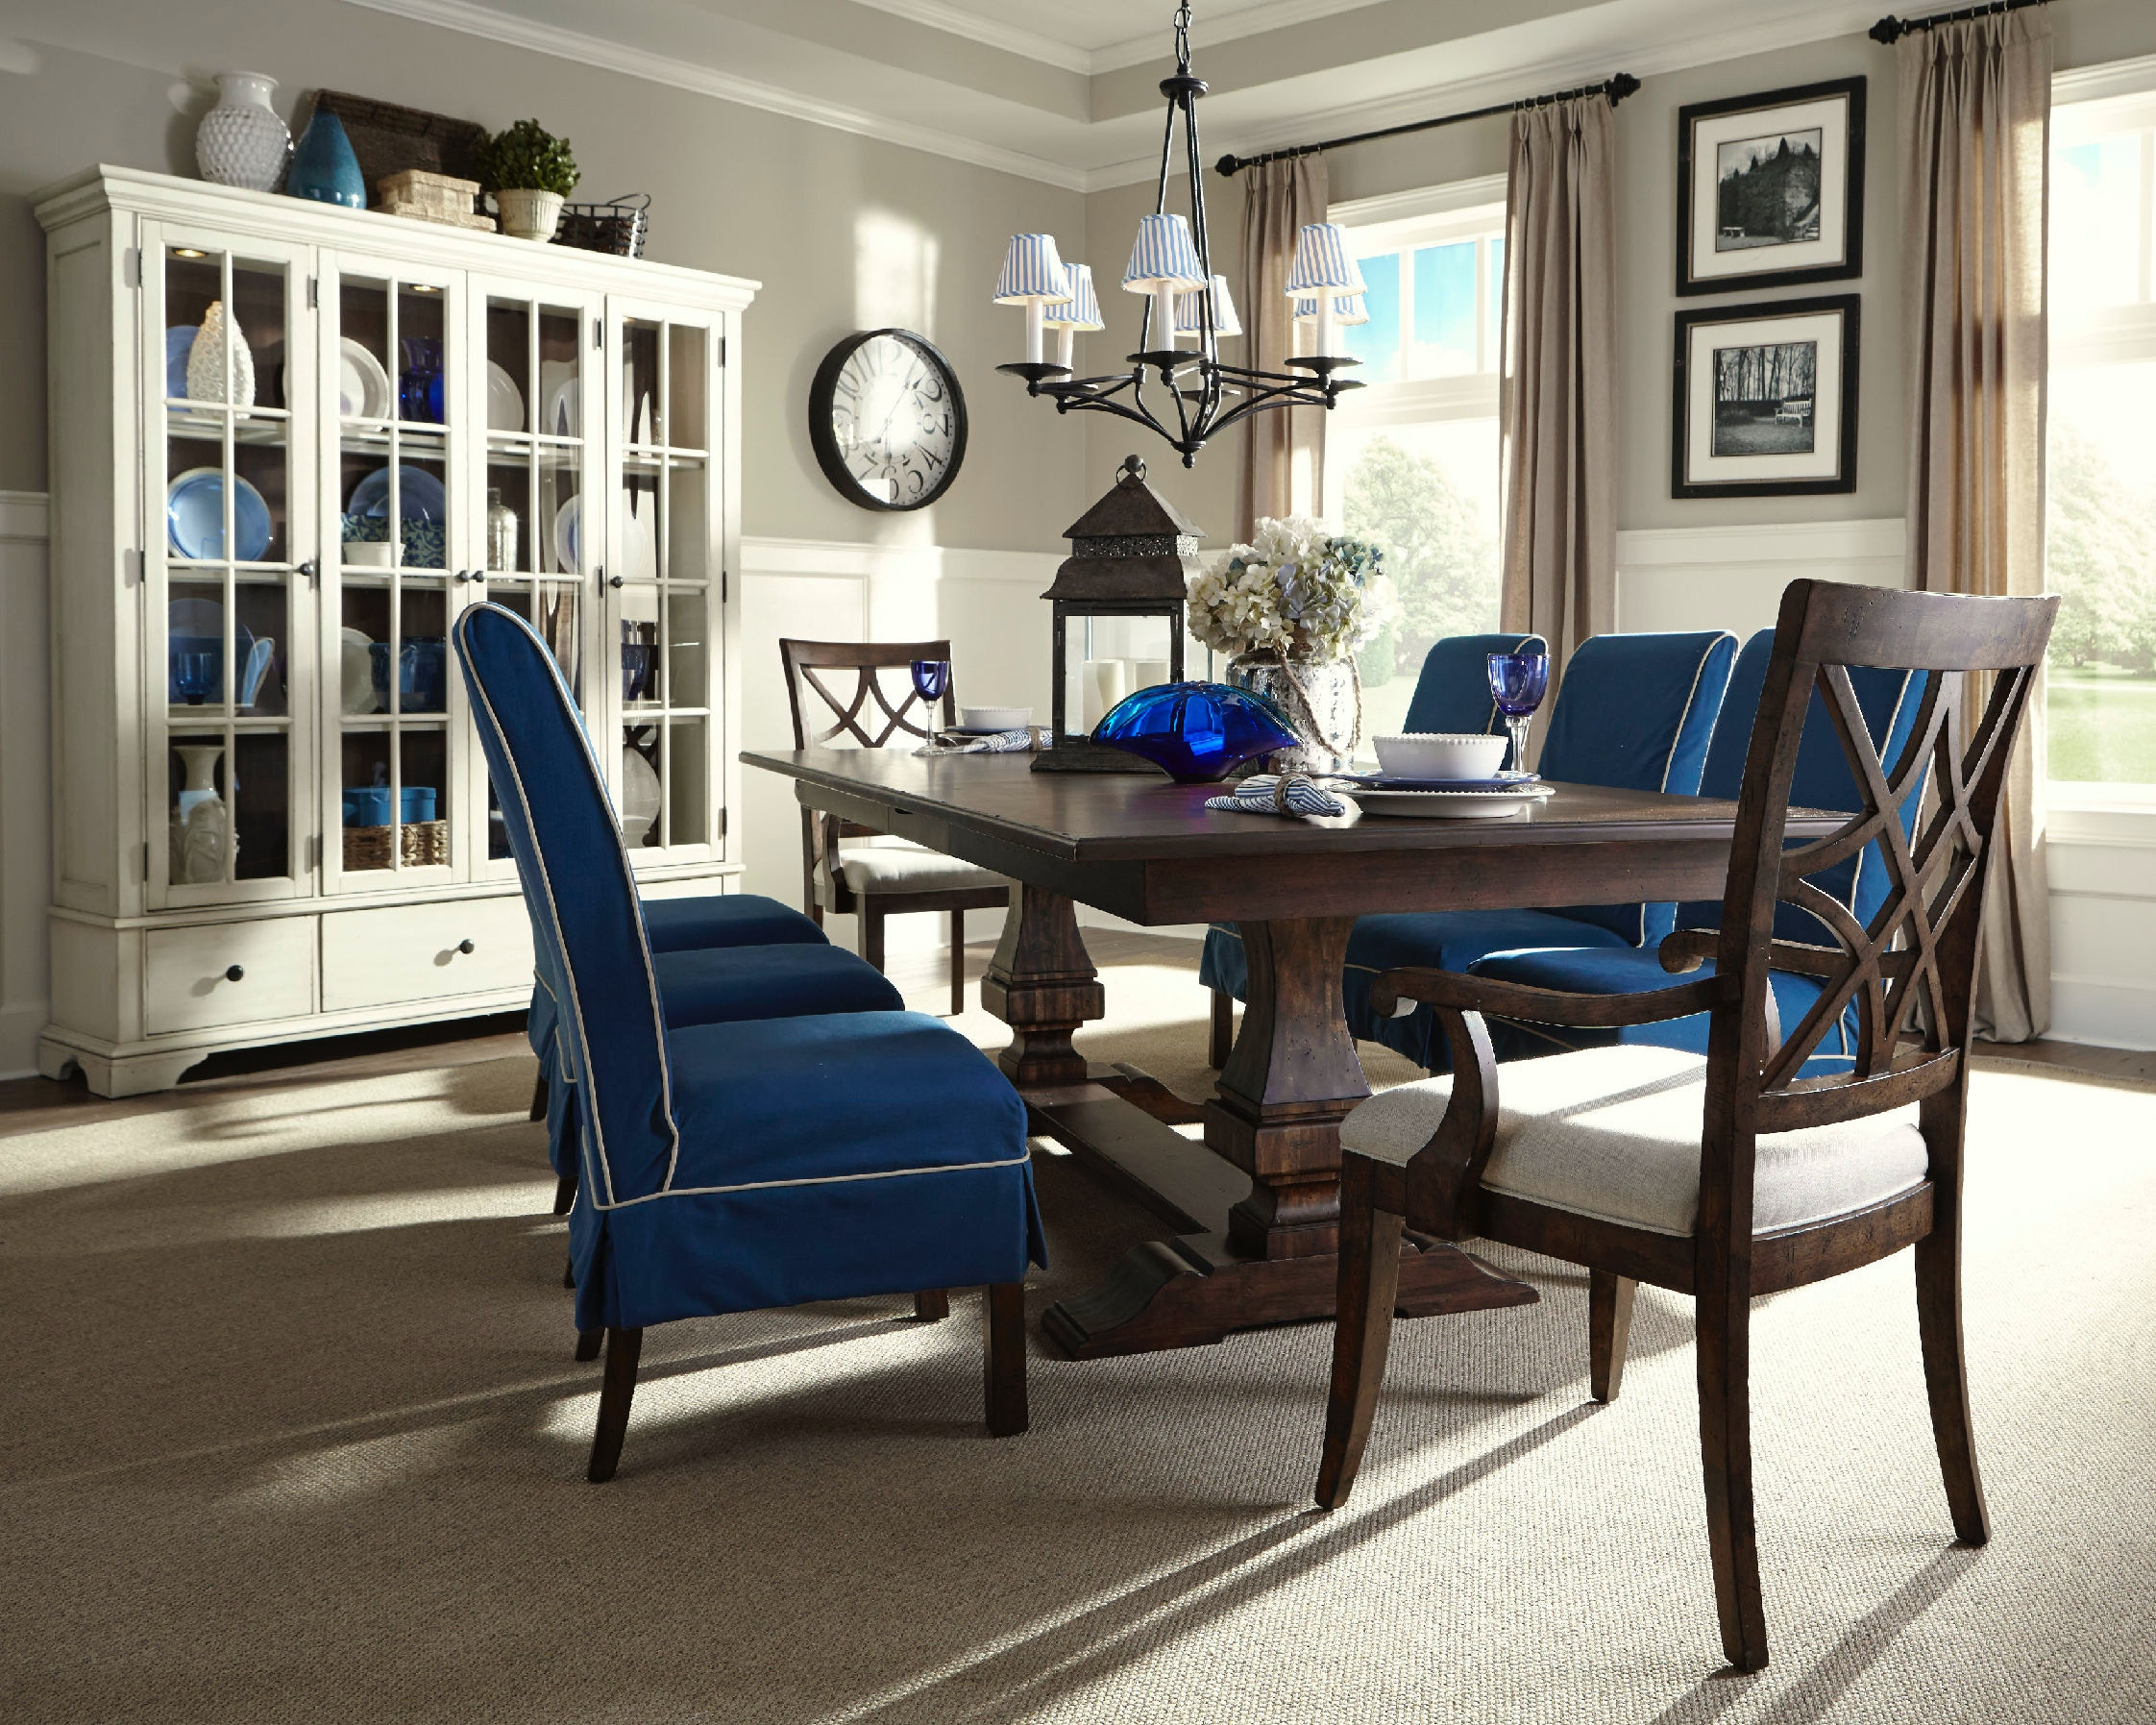 Klaussner International Dining Room Trisha Yearwood 920 Dining